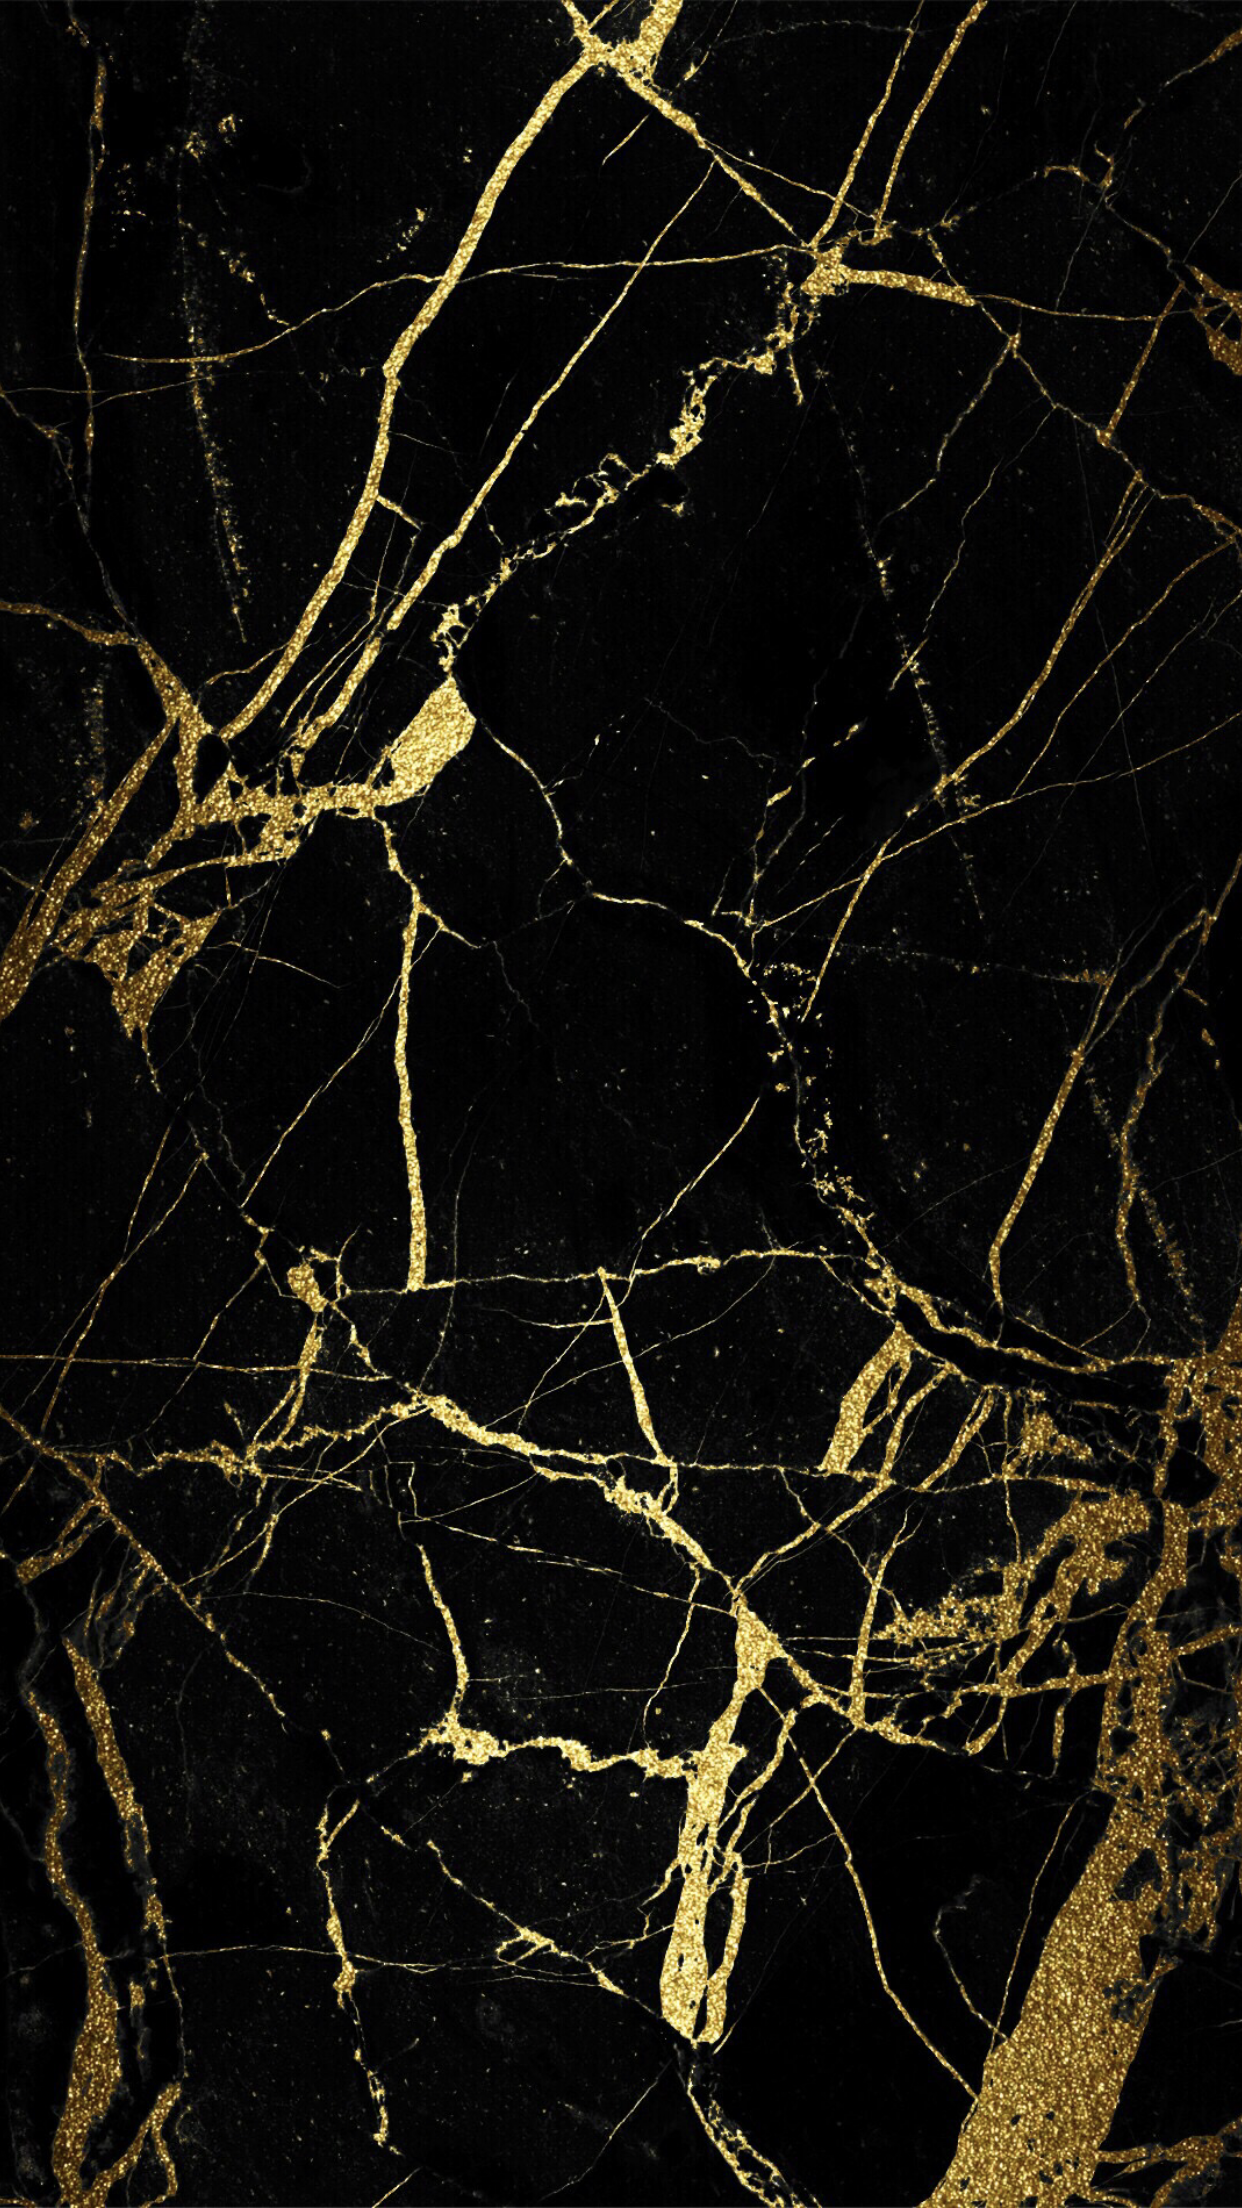 Pin By Maurice Van Bladel On Wallpapers Black And Gold Marble Gold Marble Wallpaper Gold Marble